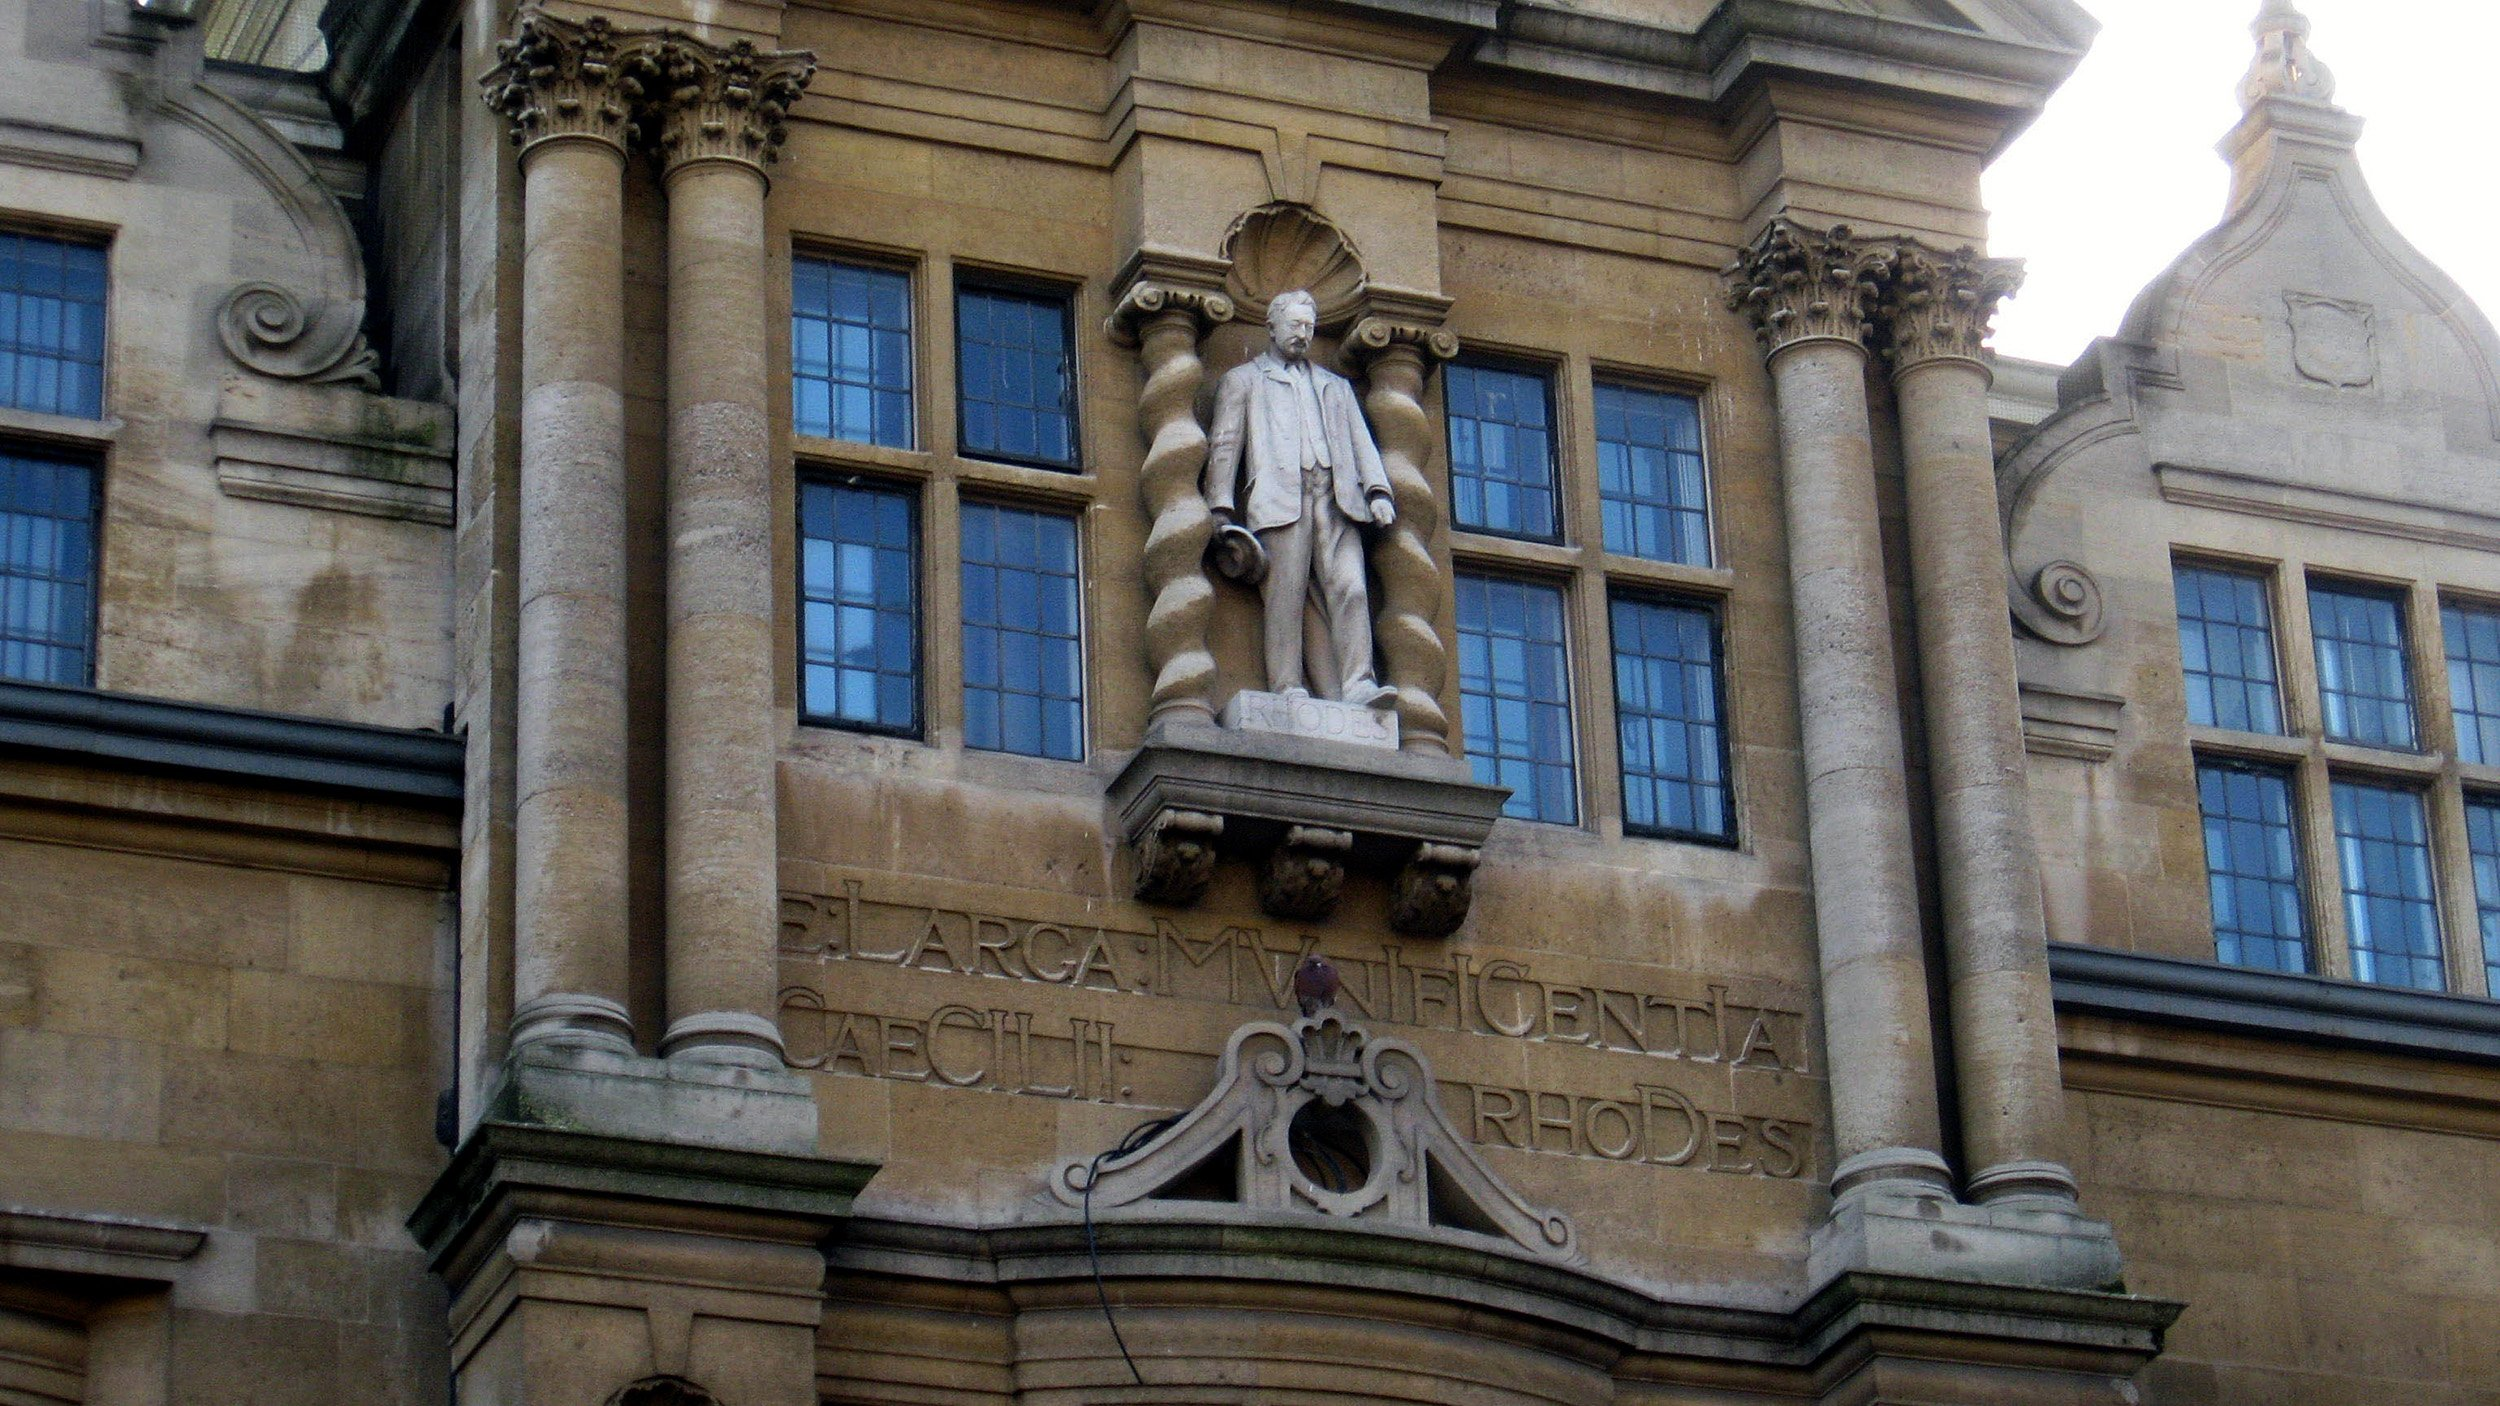 Rhodes statue in Oxford